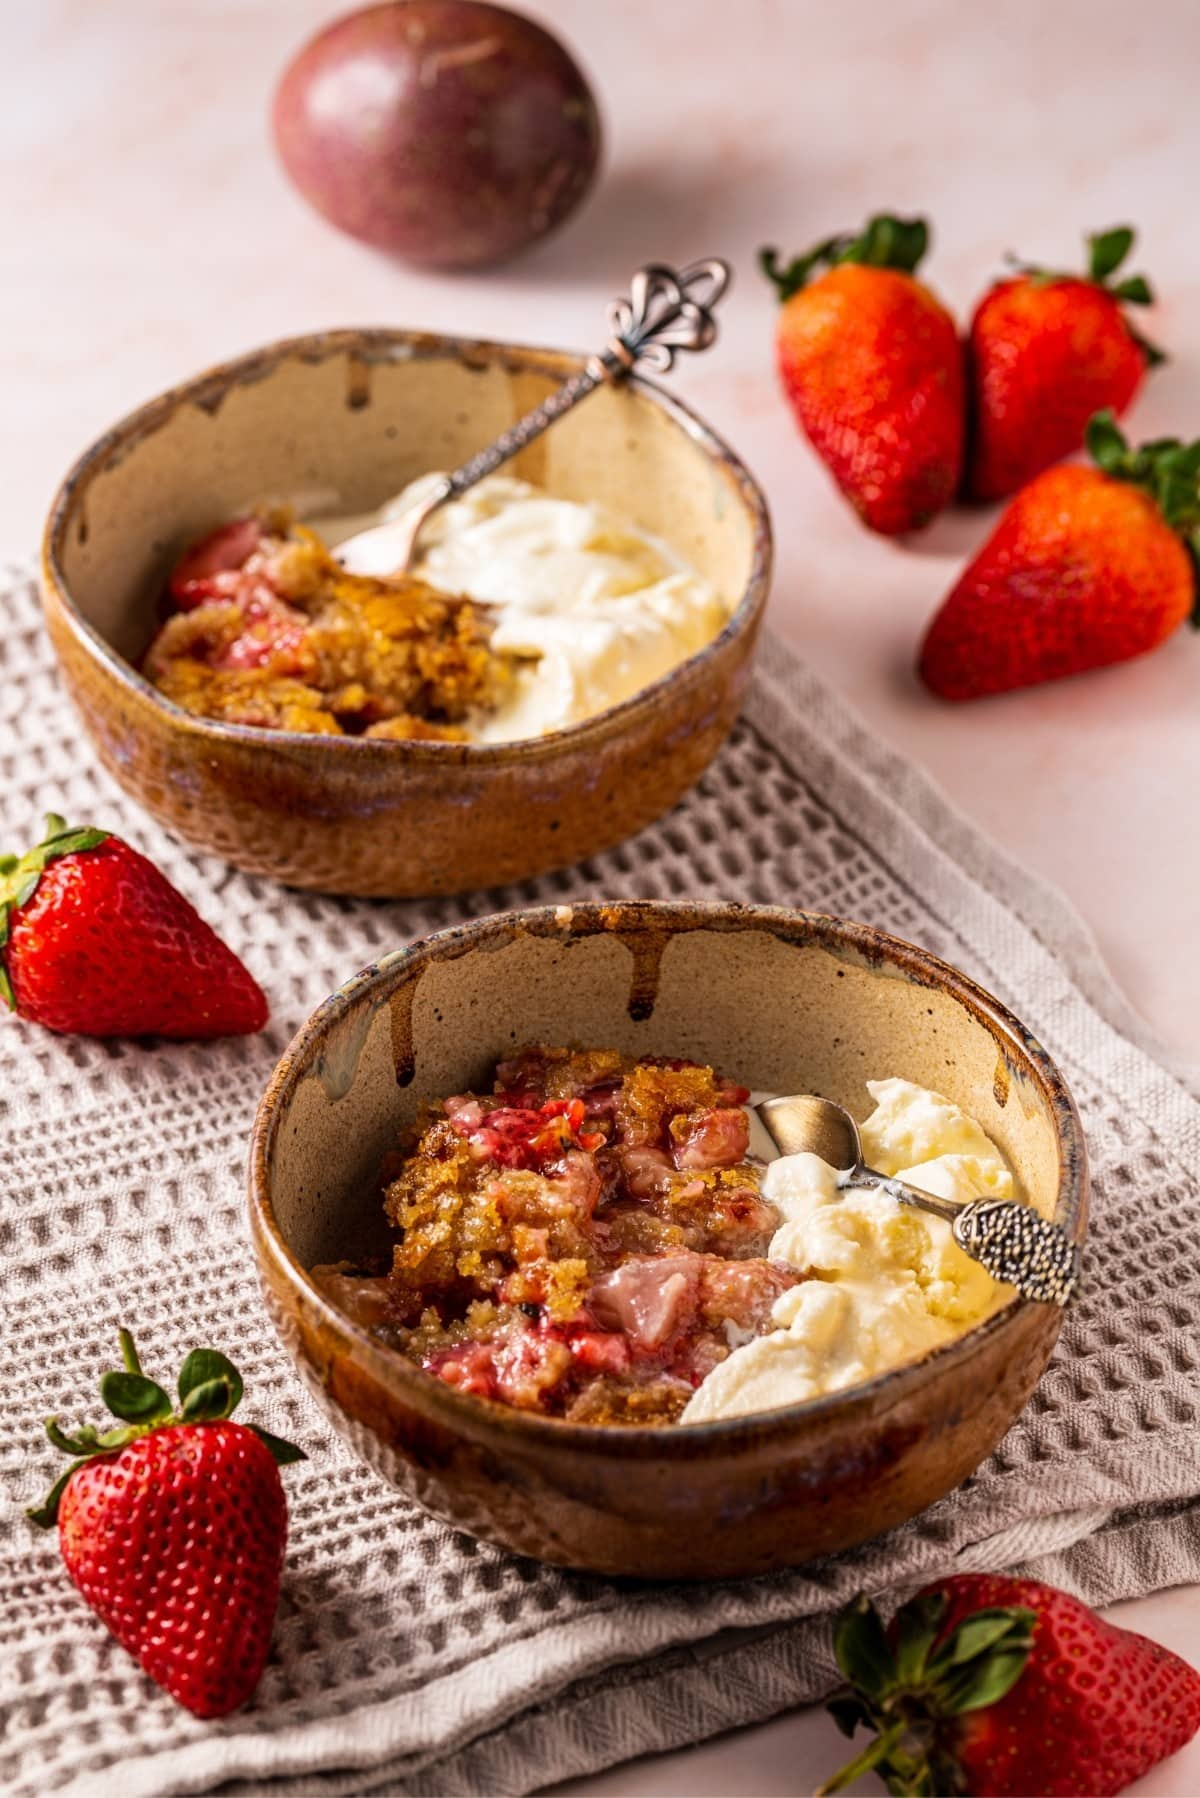 Two bowls of paleo strawberry passion fruit cobbler recipe and vanilla ice cream.